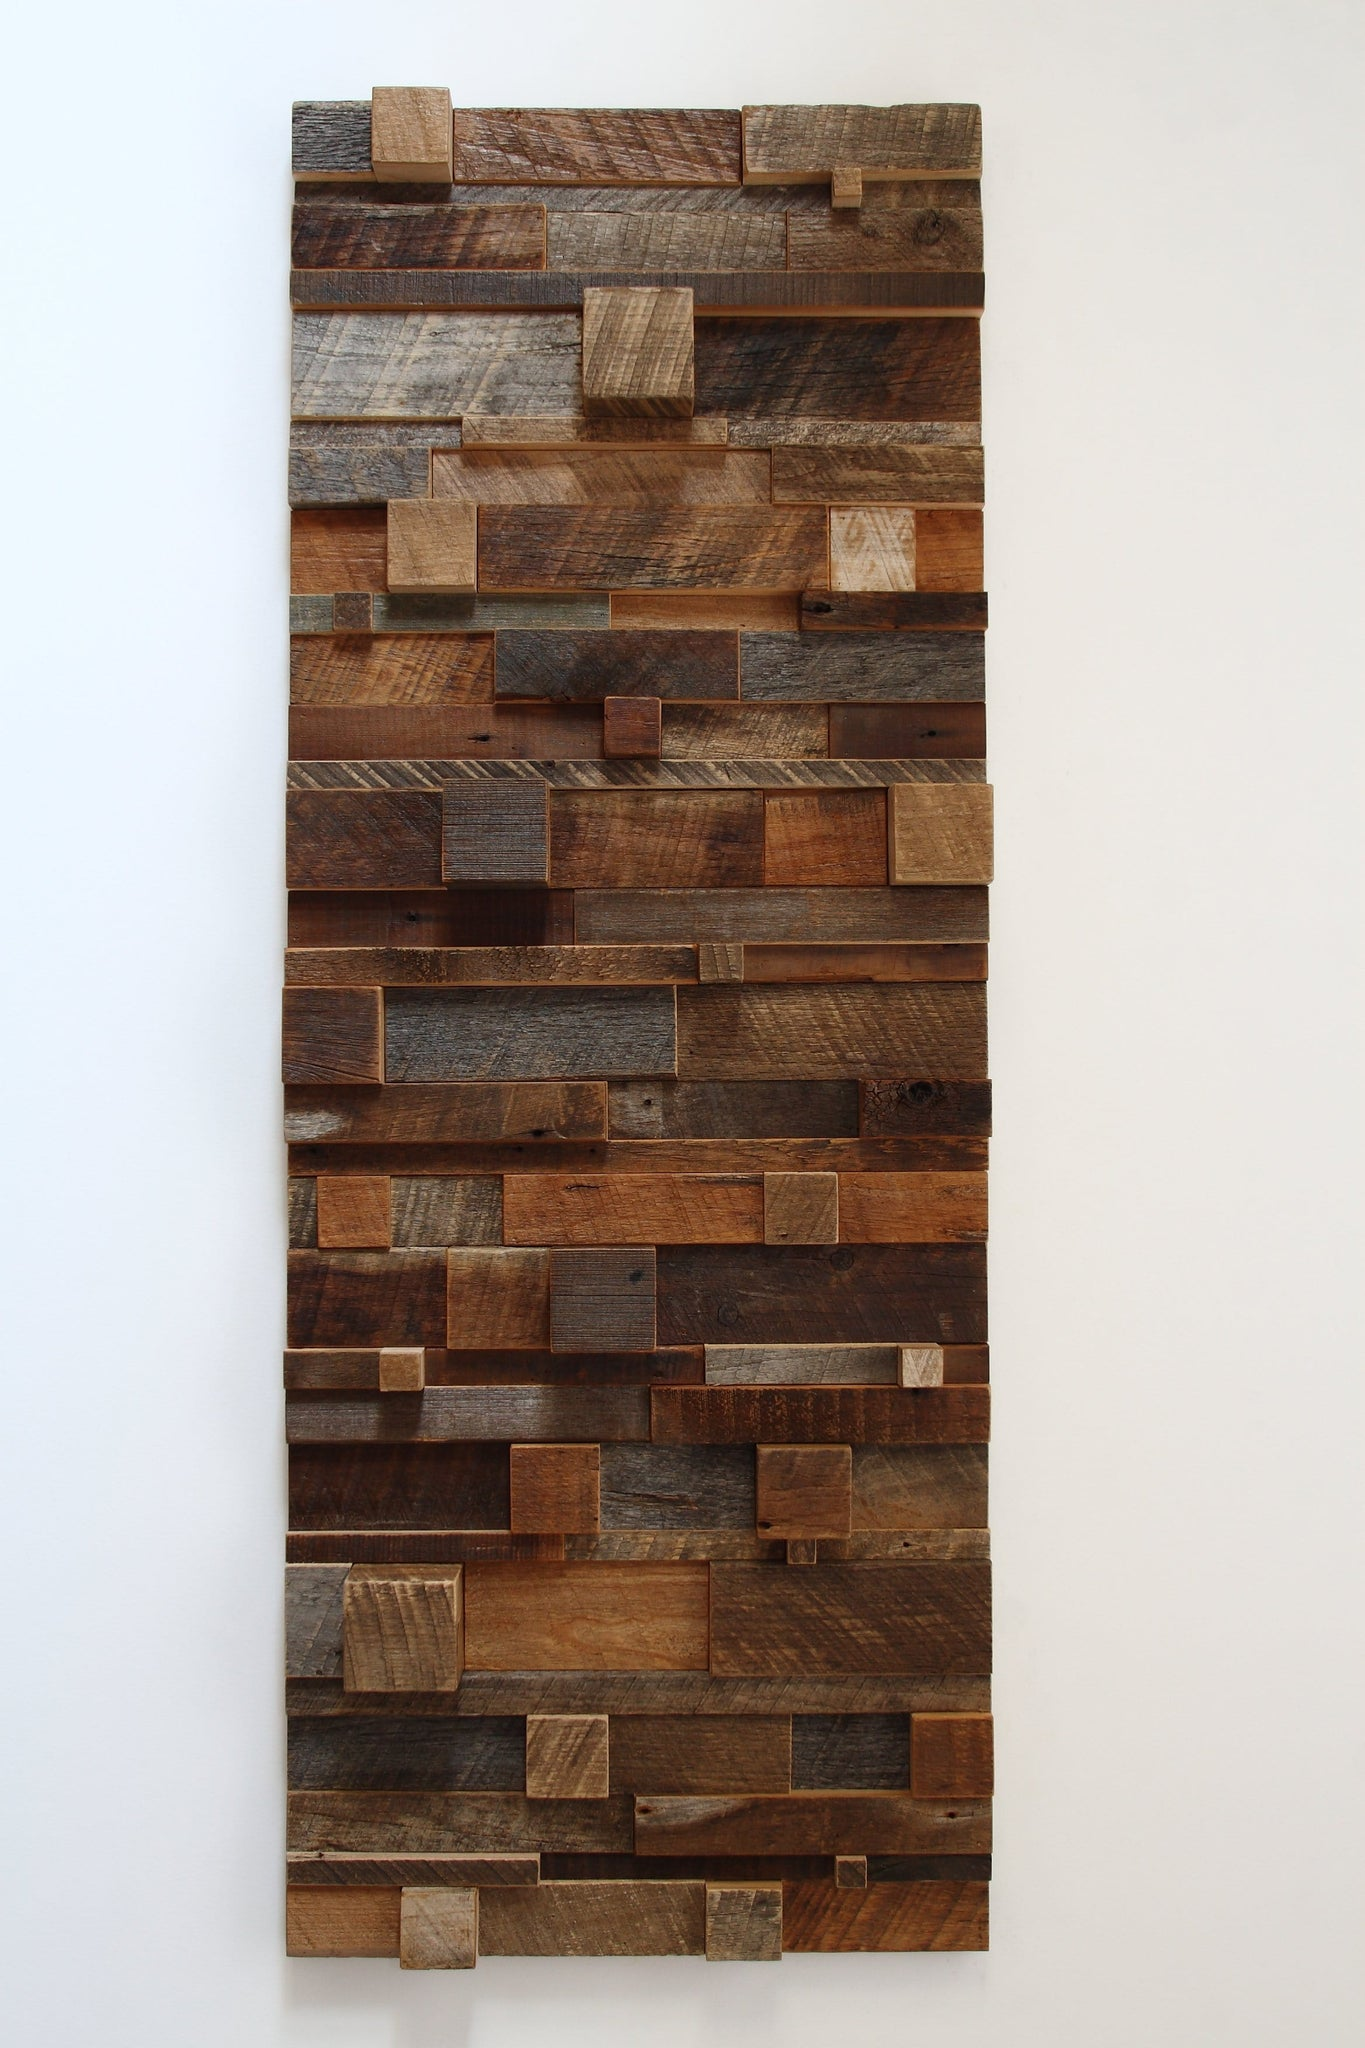 Geometric Cube Art: Wood wall sculptures